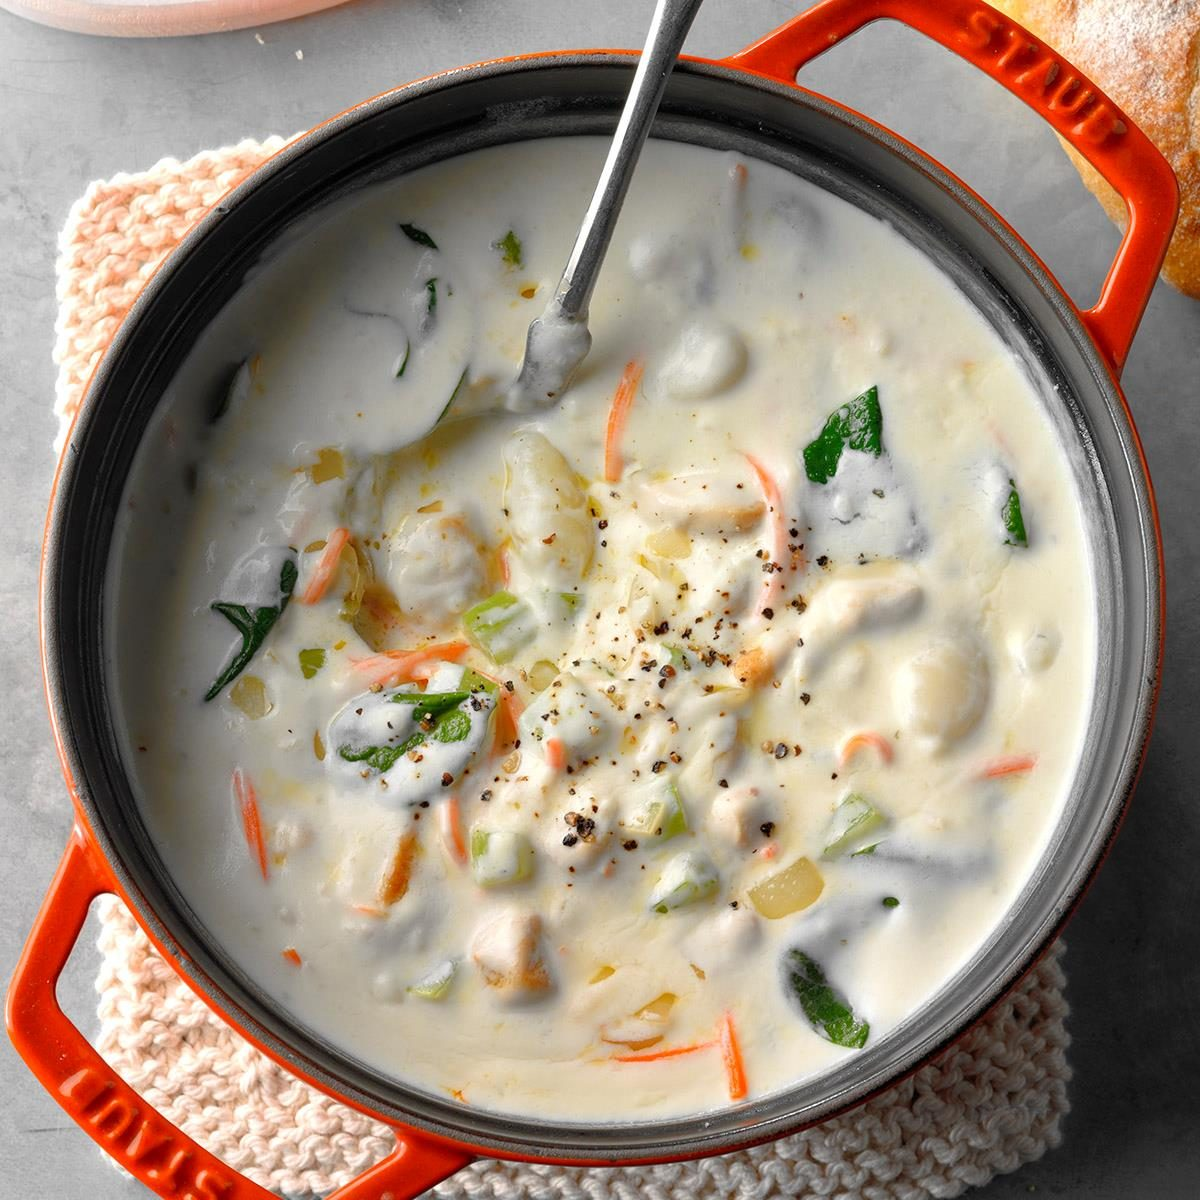 Sunday: Creamy Chicken Gnocchi Soup